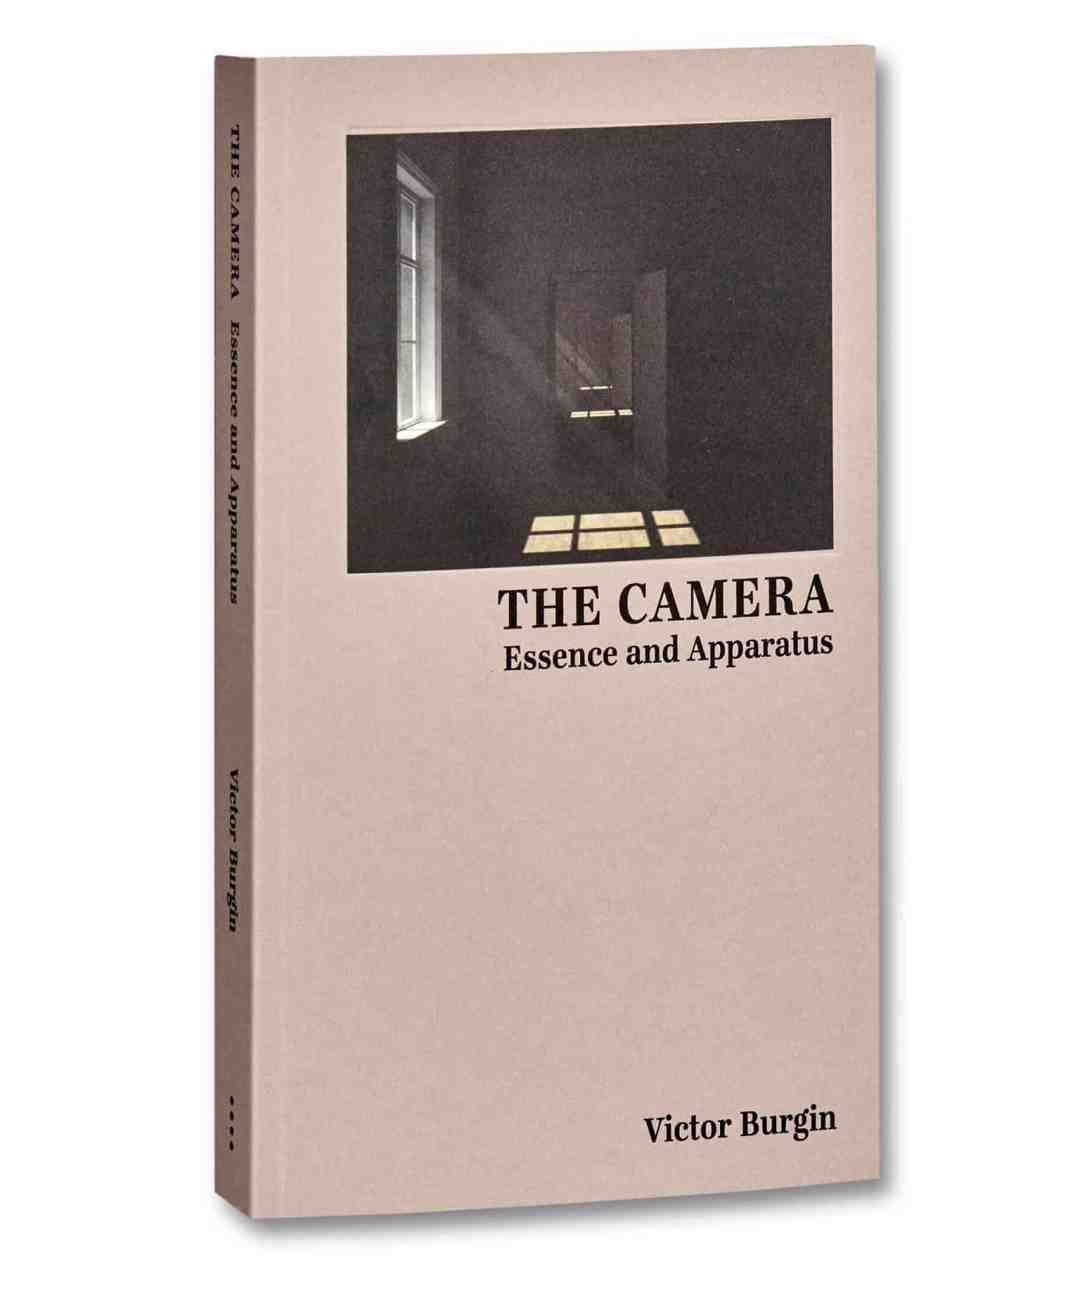 Victor Burgin; The Camera: Essence and Apparatus;